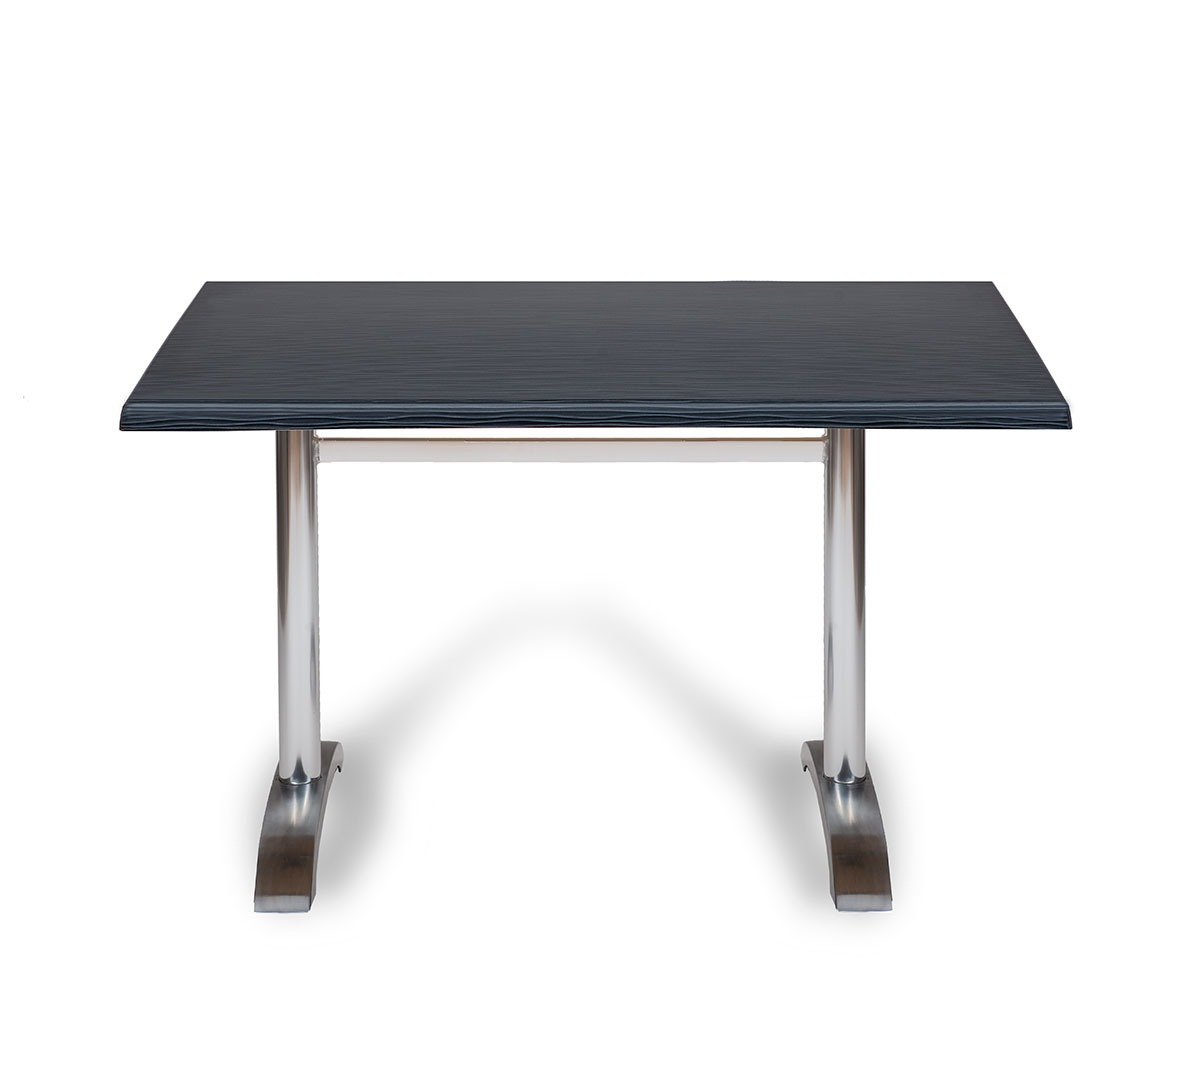 Mesa Oporto a 75 rectangular aluminio pulido tablero top mar negro